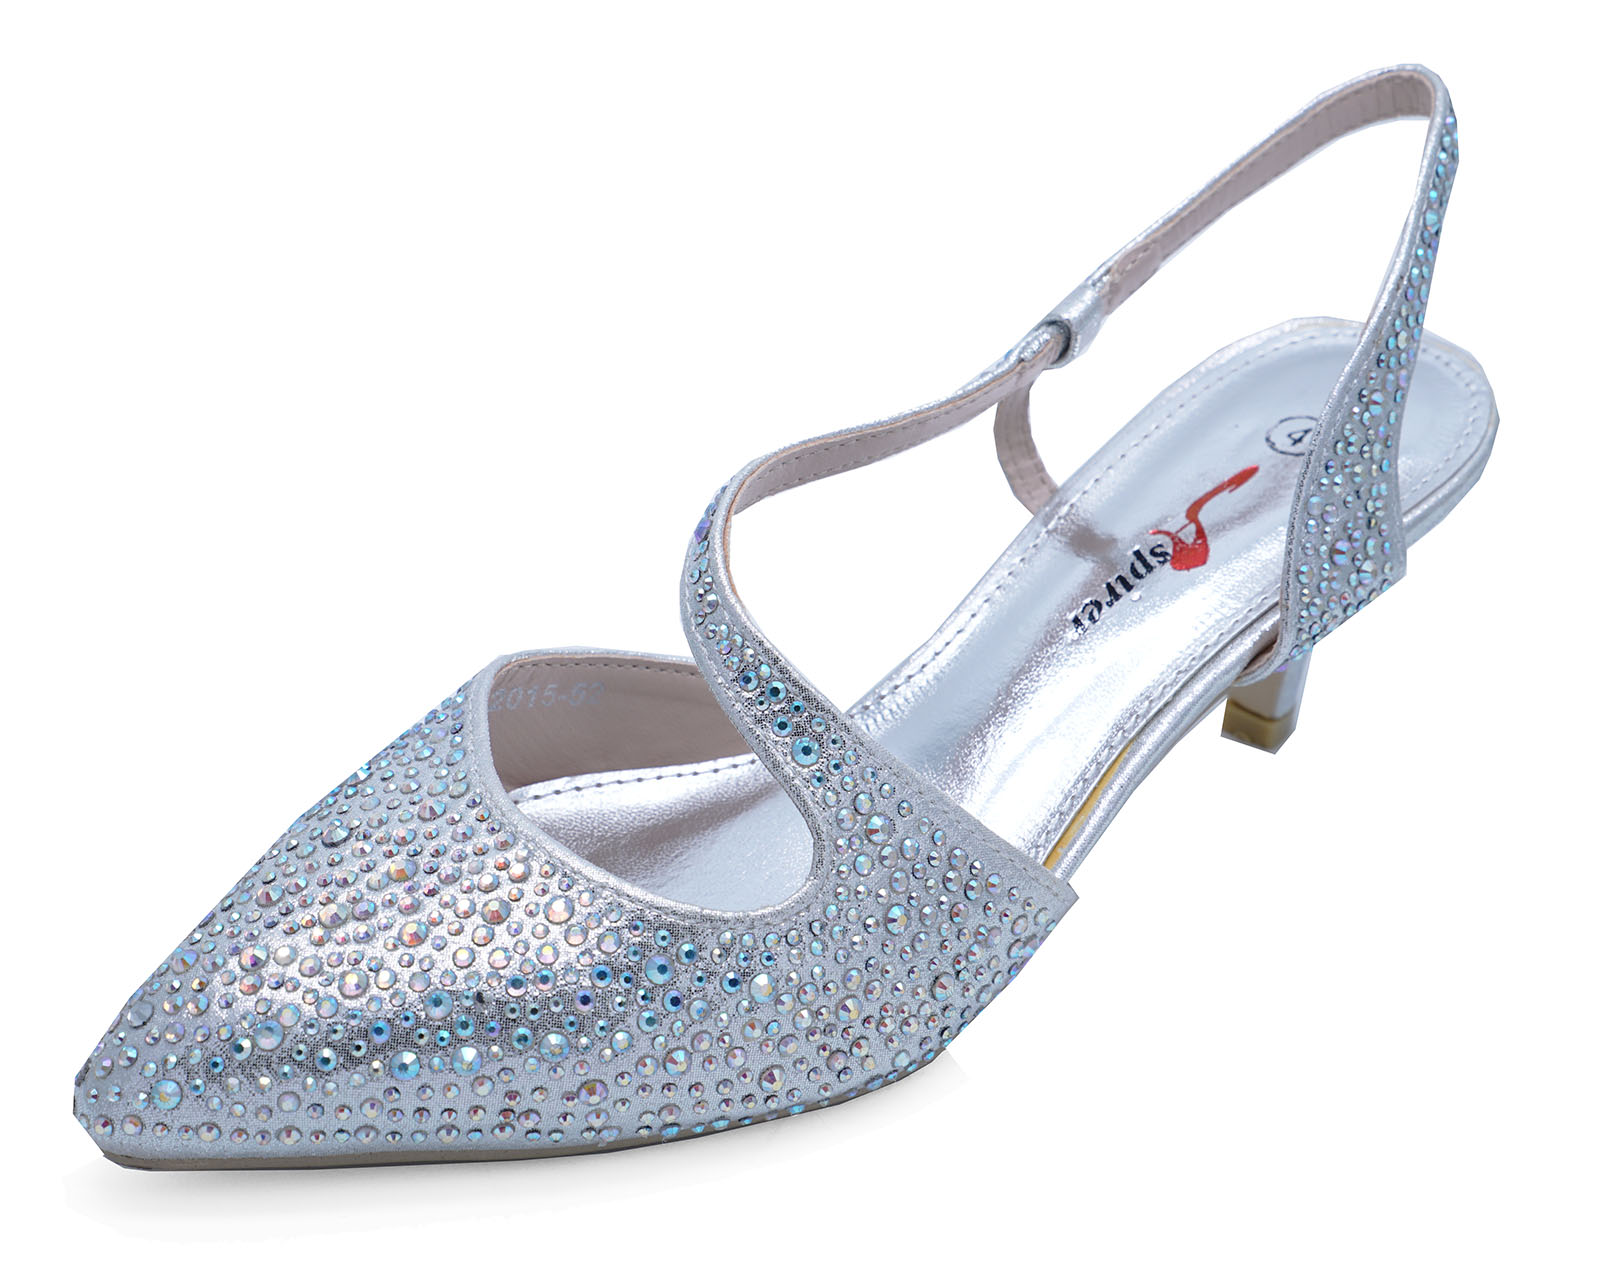 51546da82 ... Shoes Sizes 3 8. Womens Silver Low Heel Slingback Diamante Elegant Party  Evening